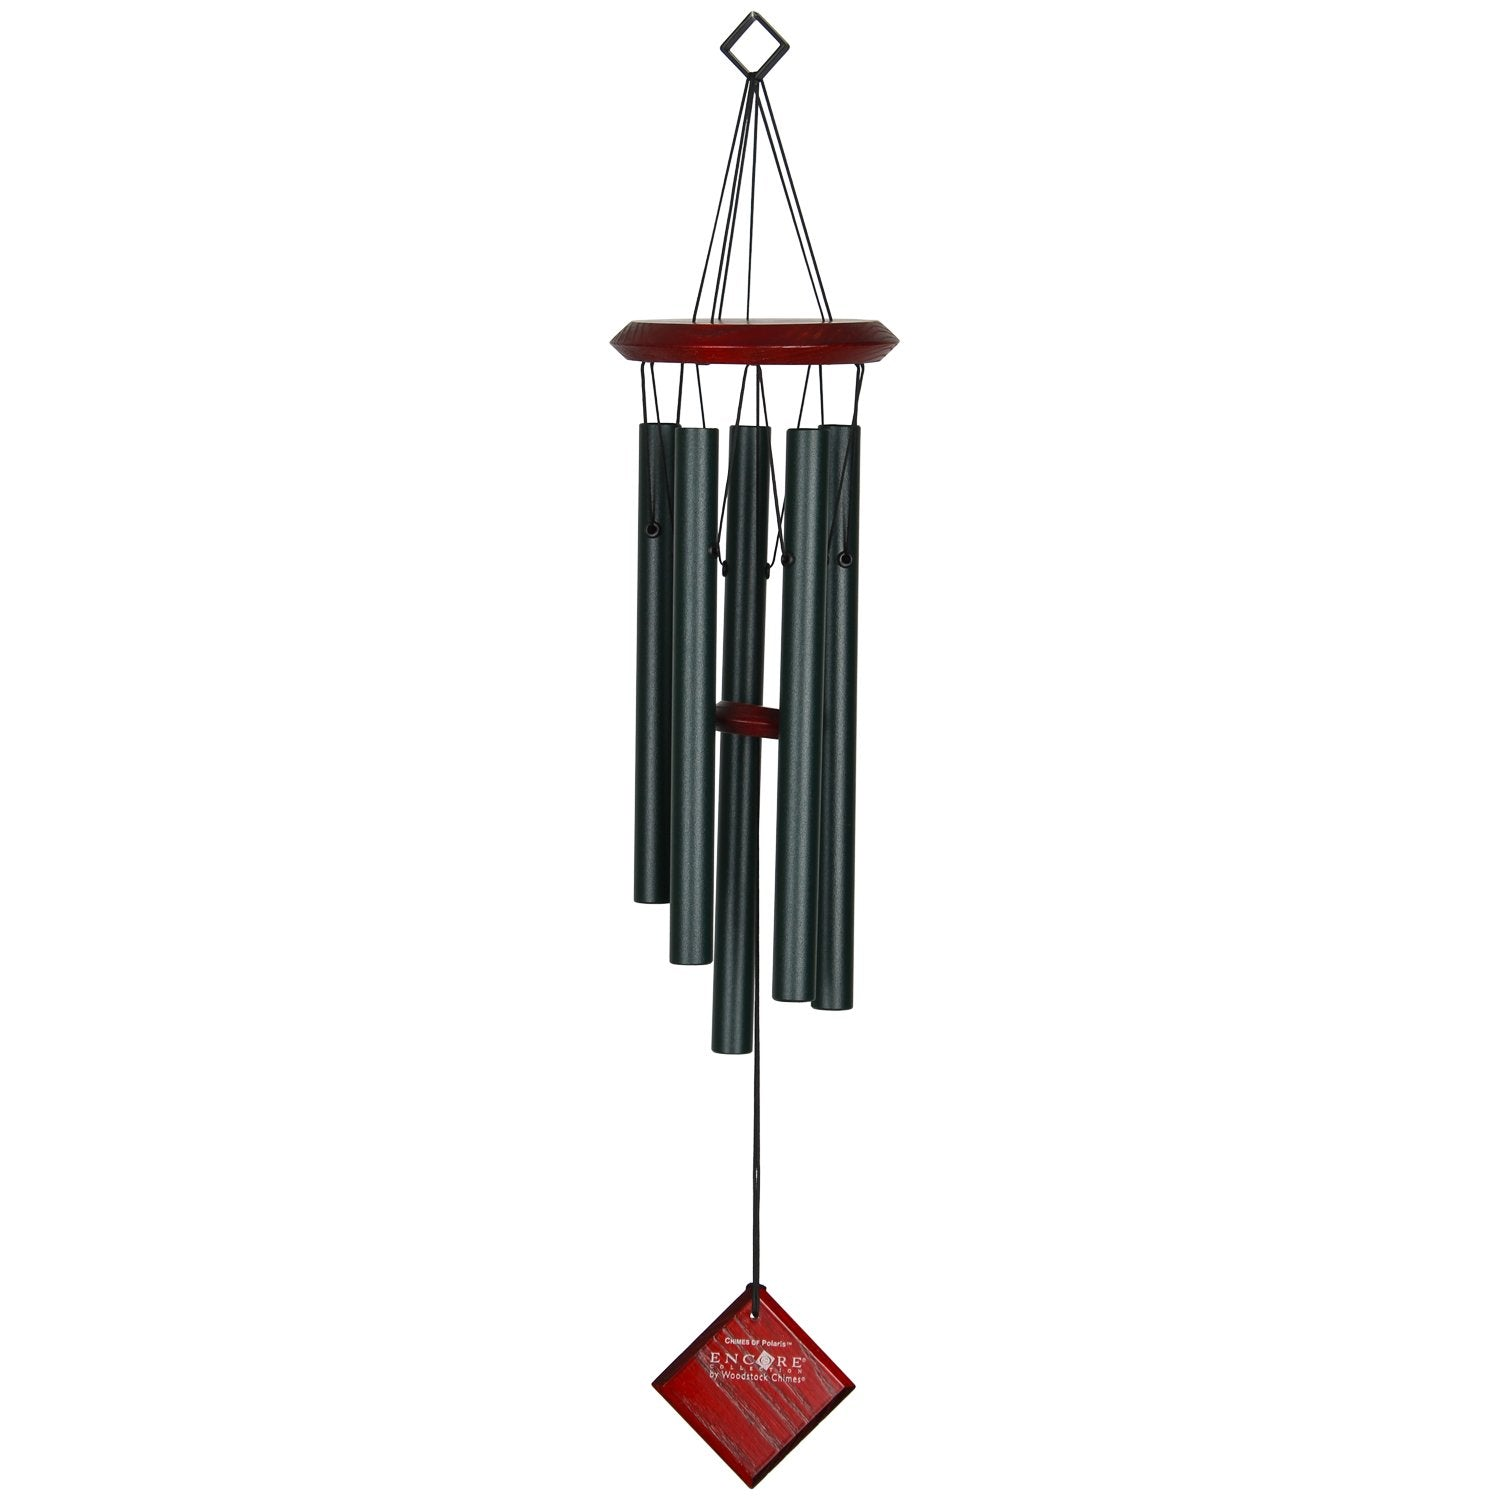 Encore Chimes of Polaris - Evergreen full product image